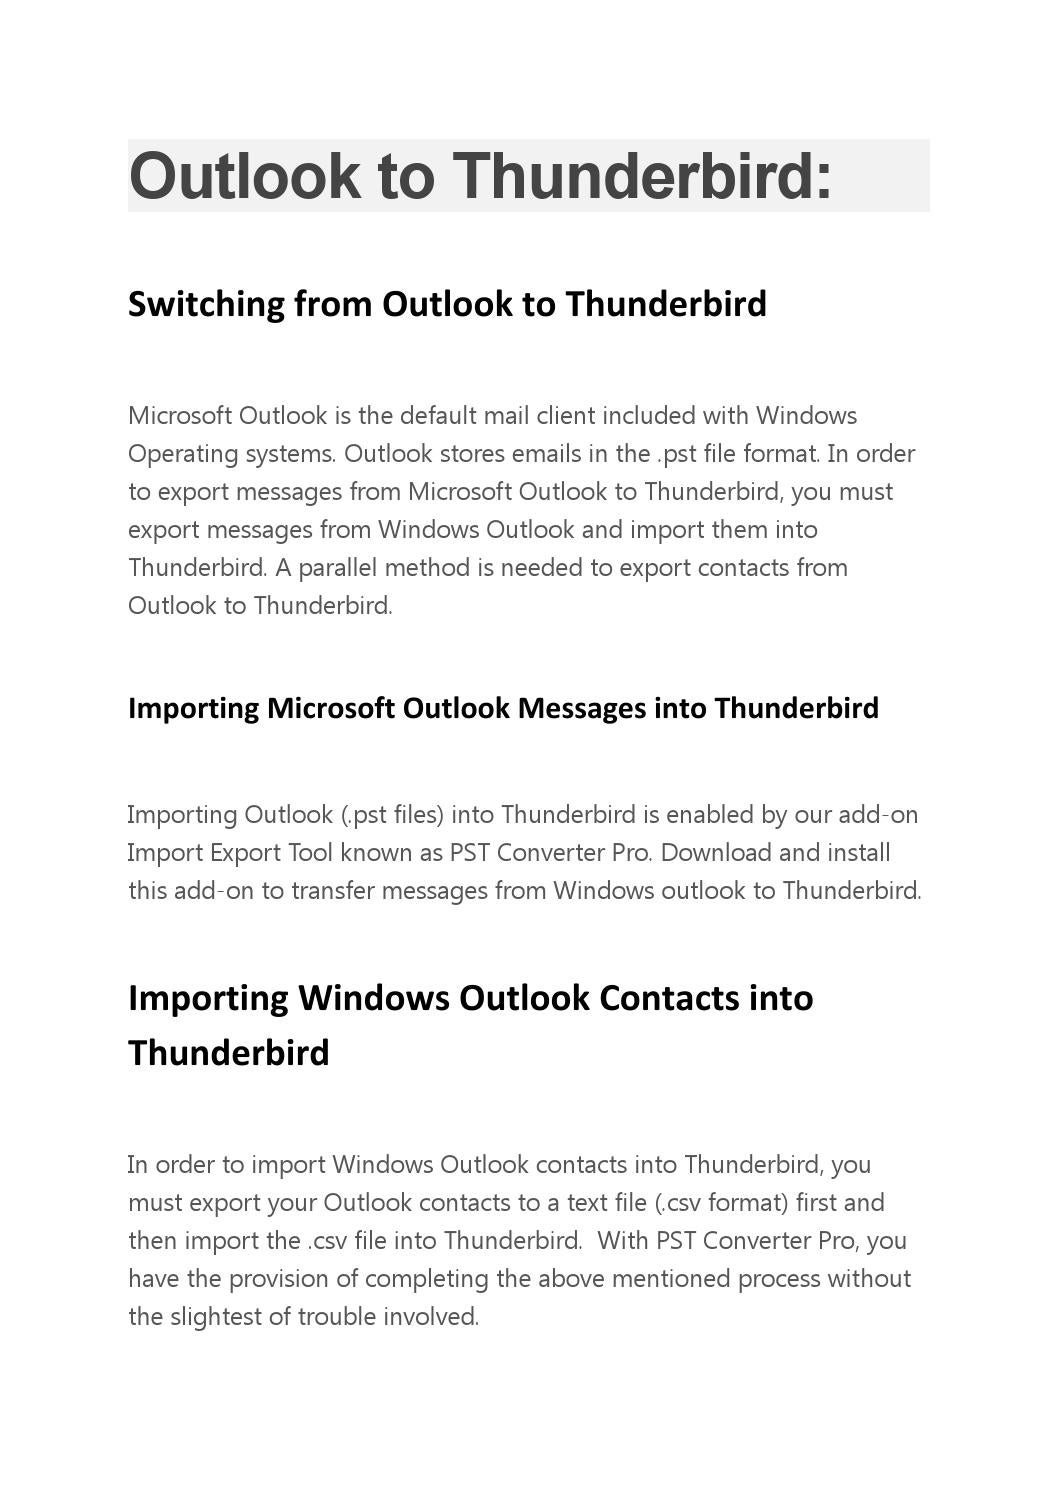 Export Windows Outlook to Thunderbird with Pst Converter Pro